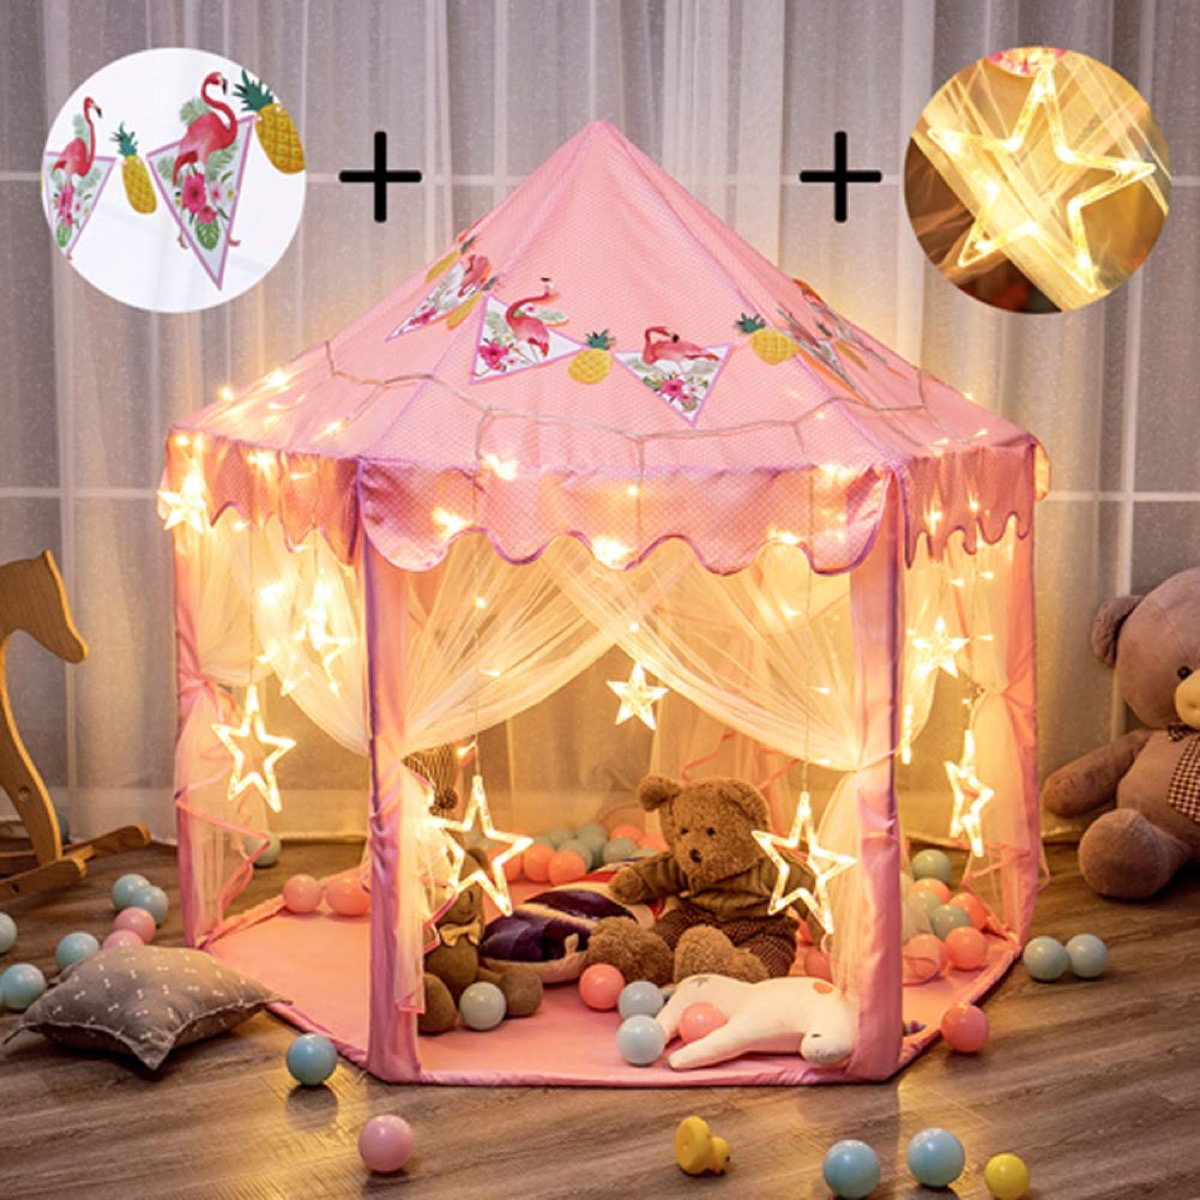 pink tent with twinkly lights, best outdoor toys for toddlers